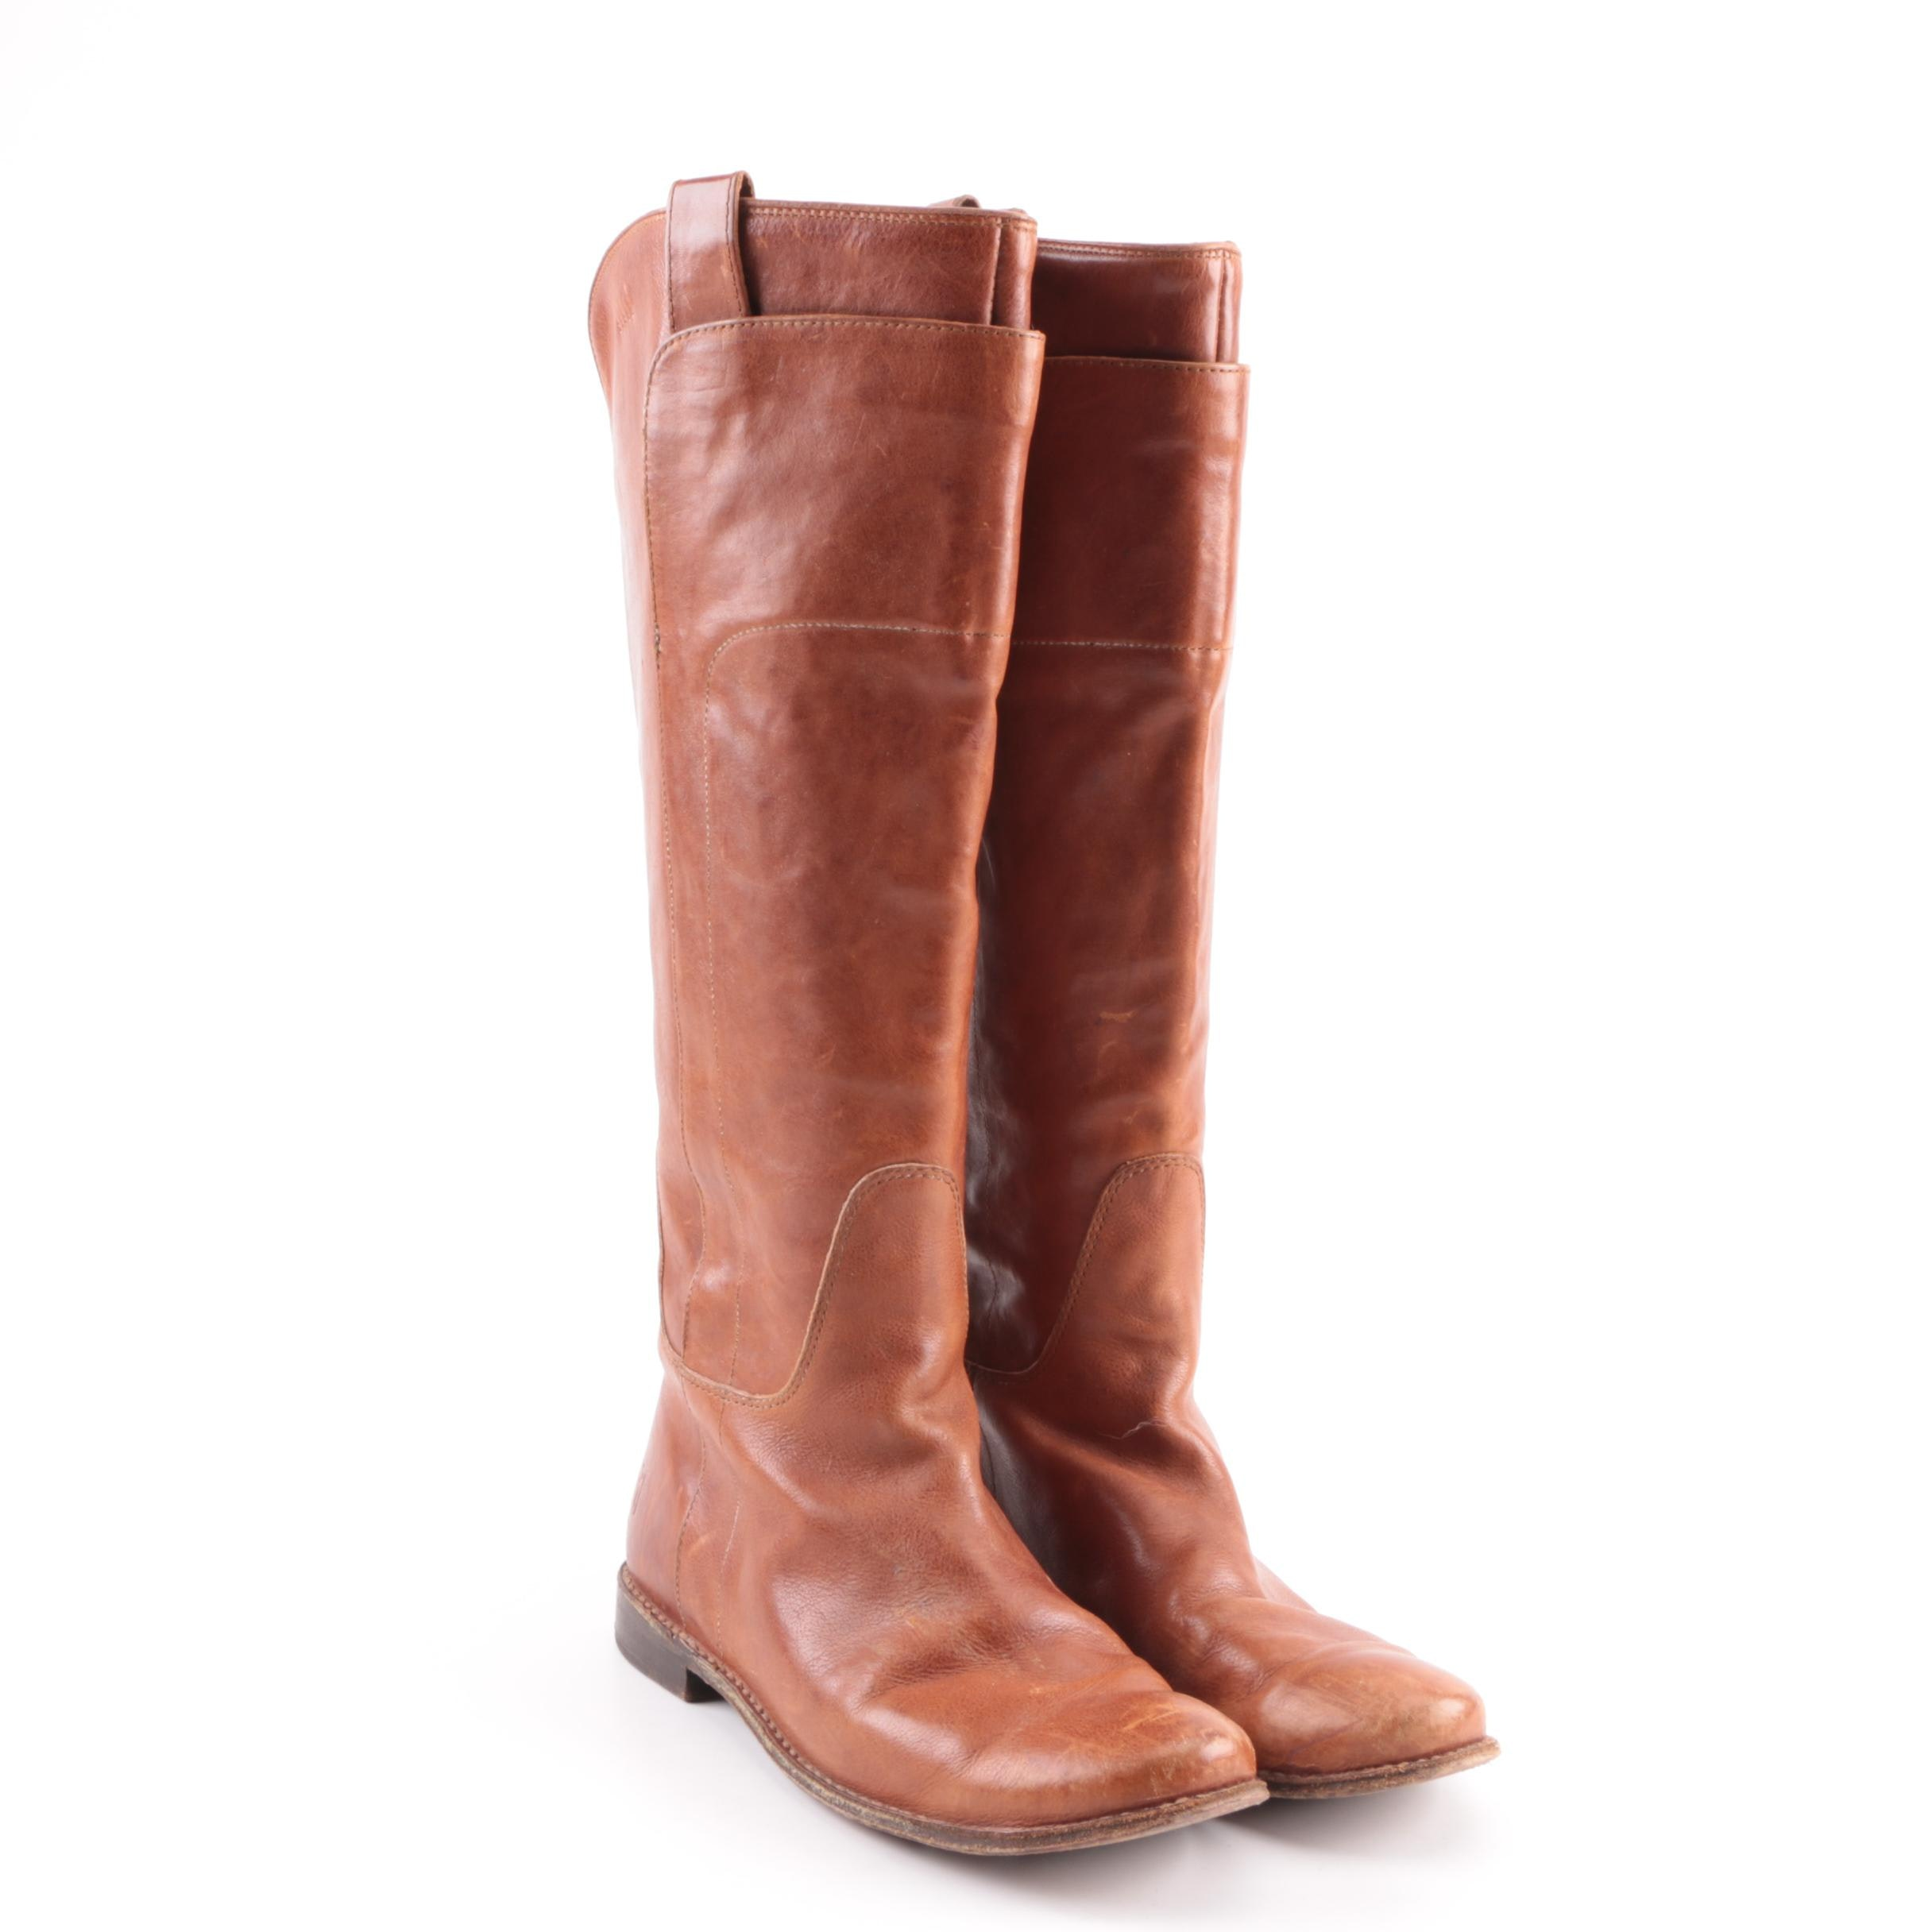 Women's Frye Paige Tan Leather Tall Riding Boot